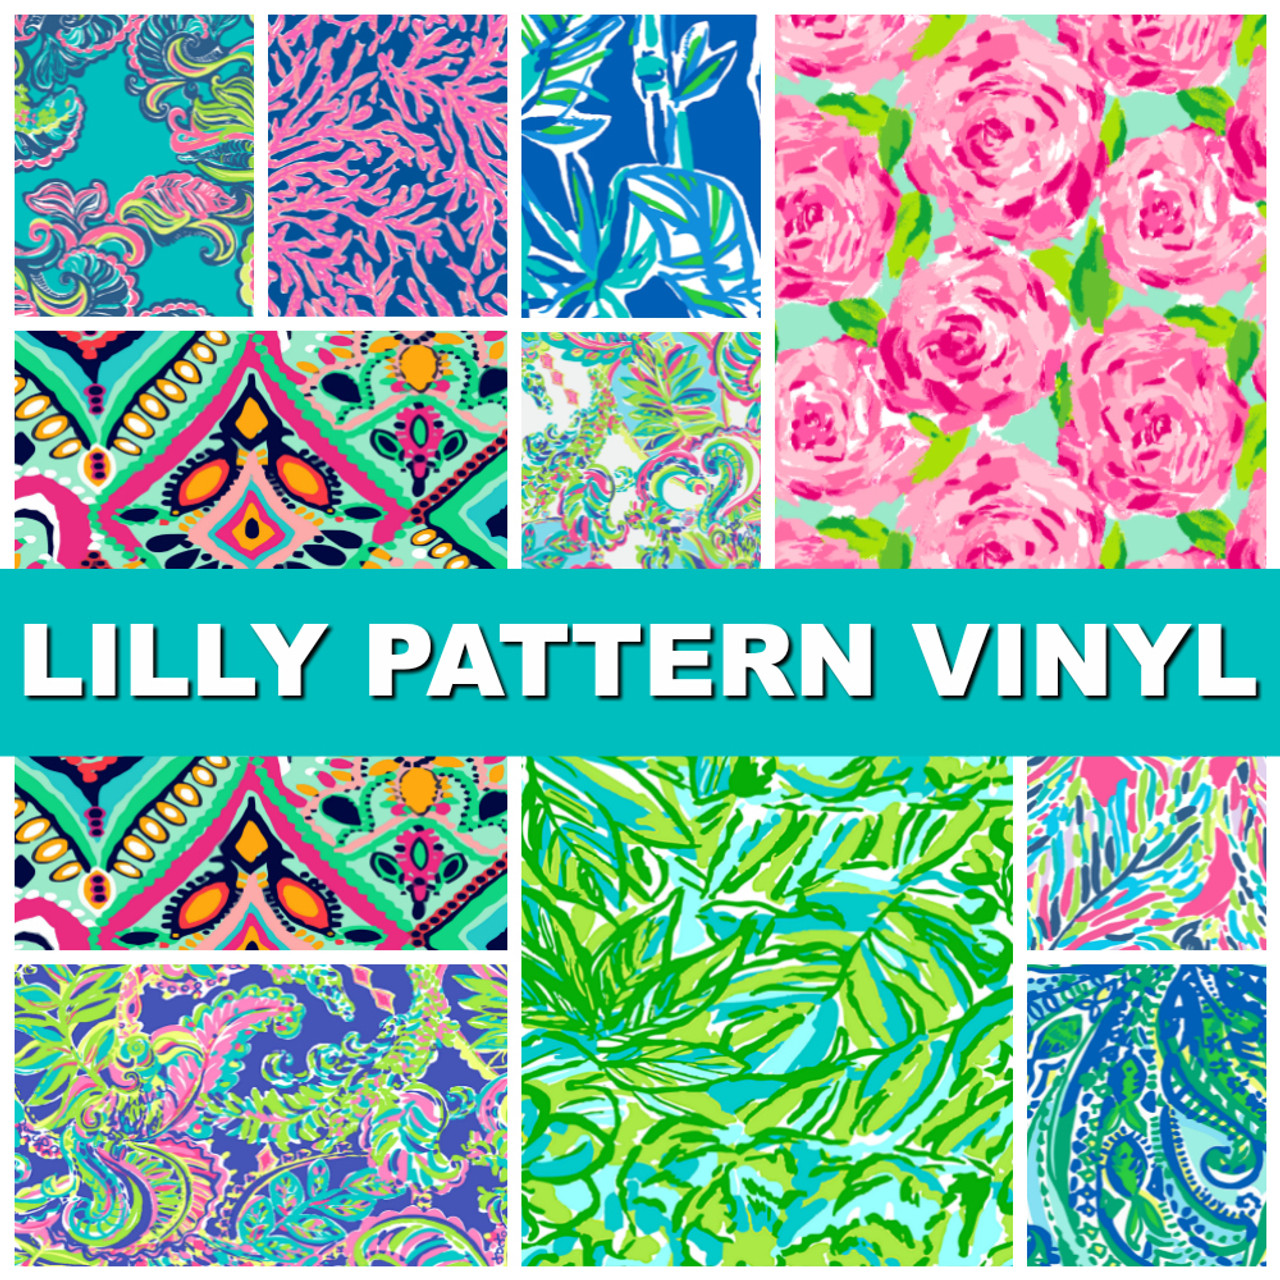 Lilly Pattern Vinyl 12 Quot X12 Quot Collection Gloss 651 My